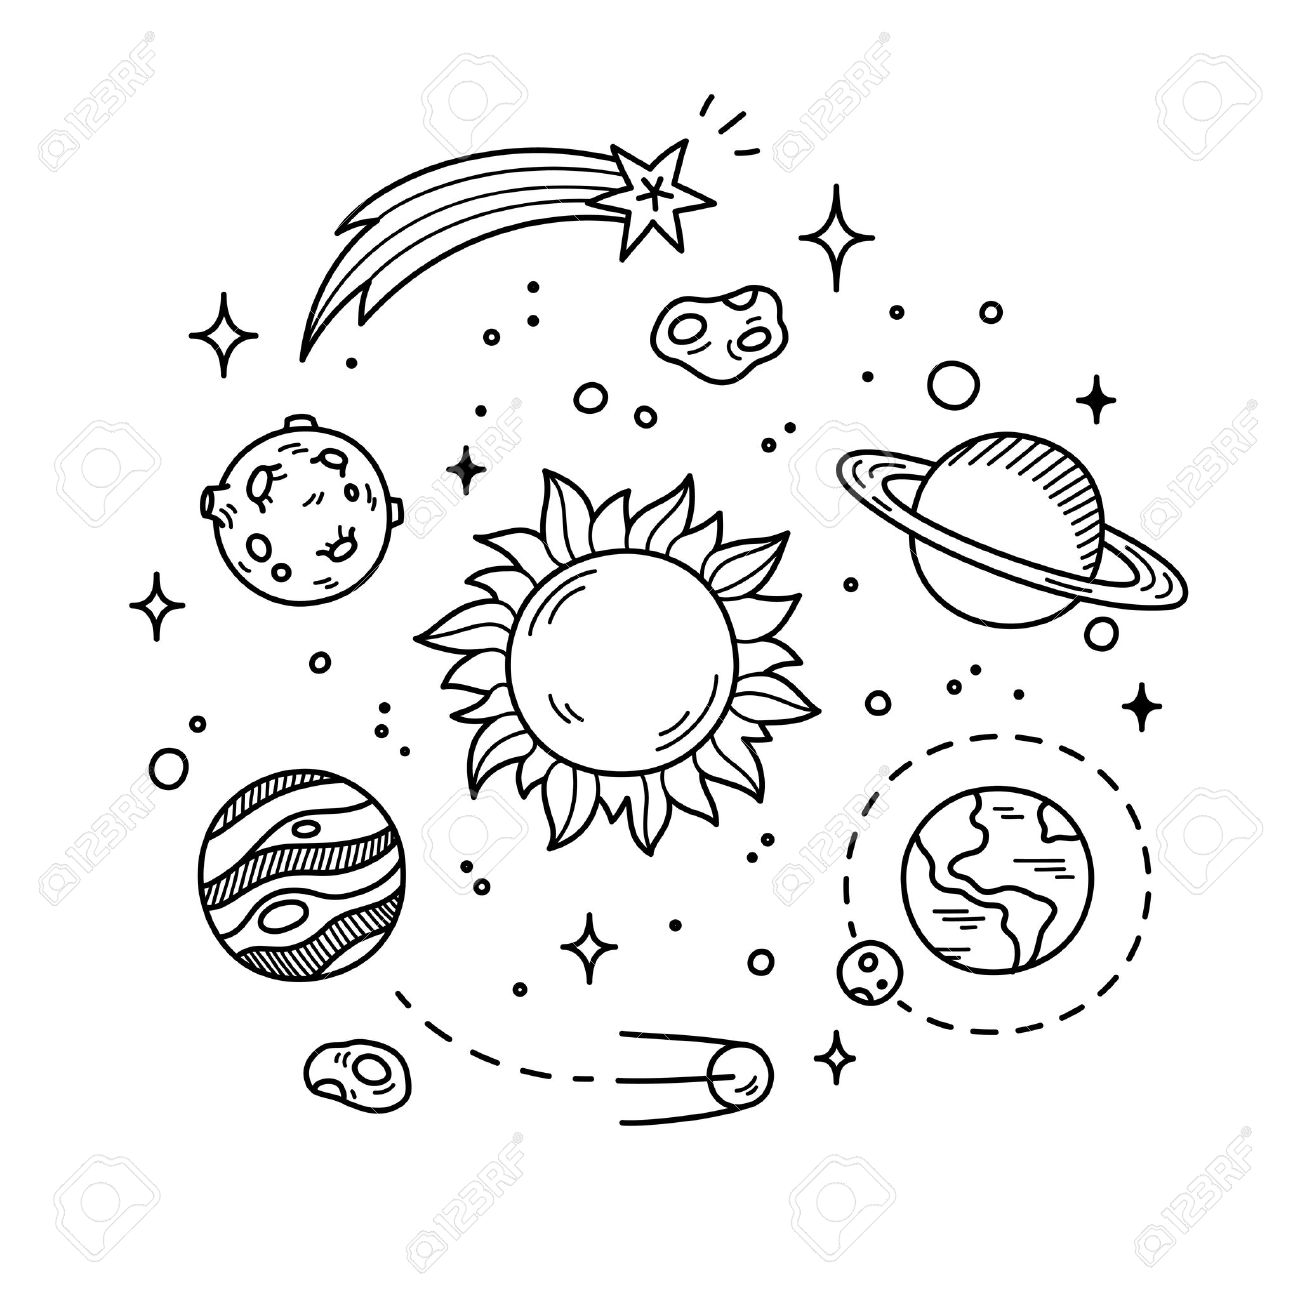 Hand Drawn Solar System With Sun Planets Asteroids And Other Outer Space Objects